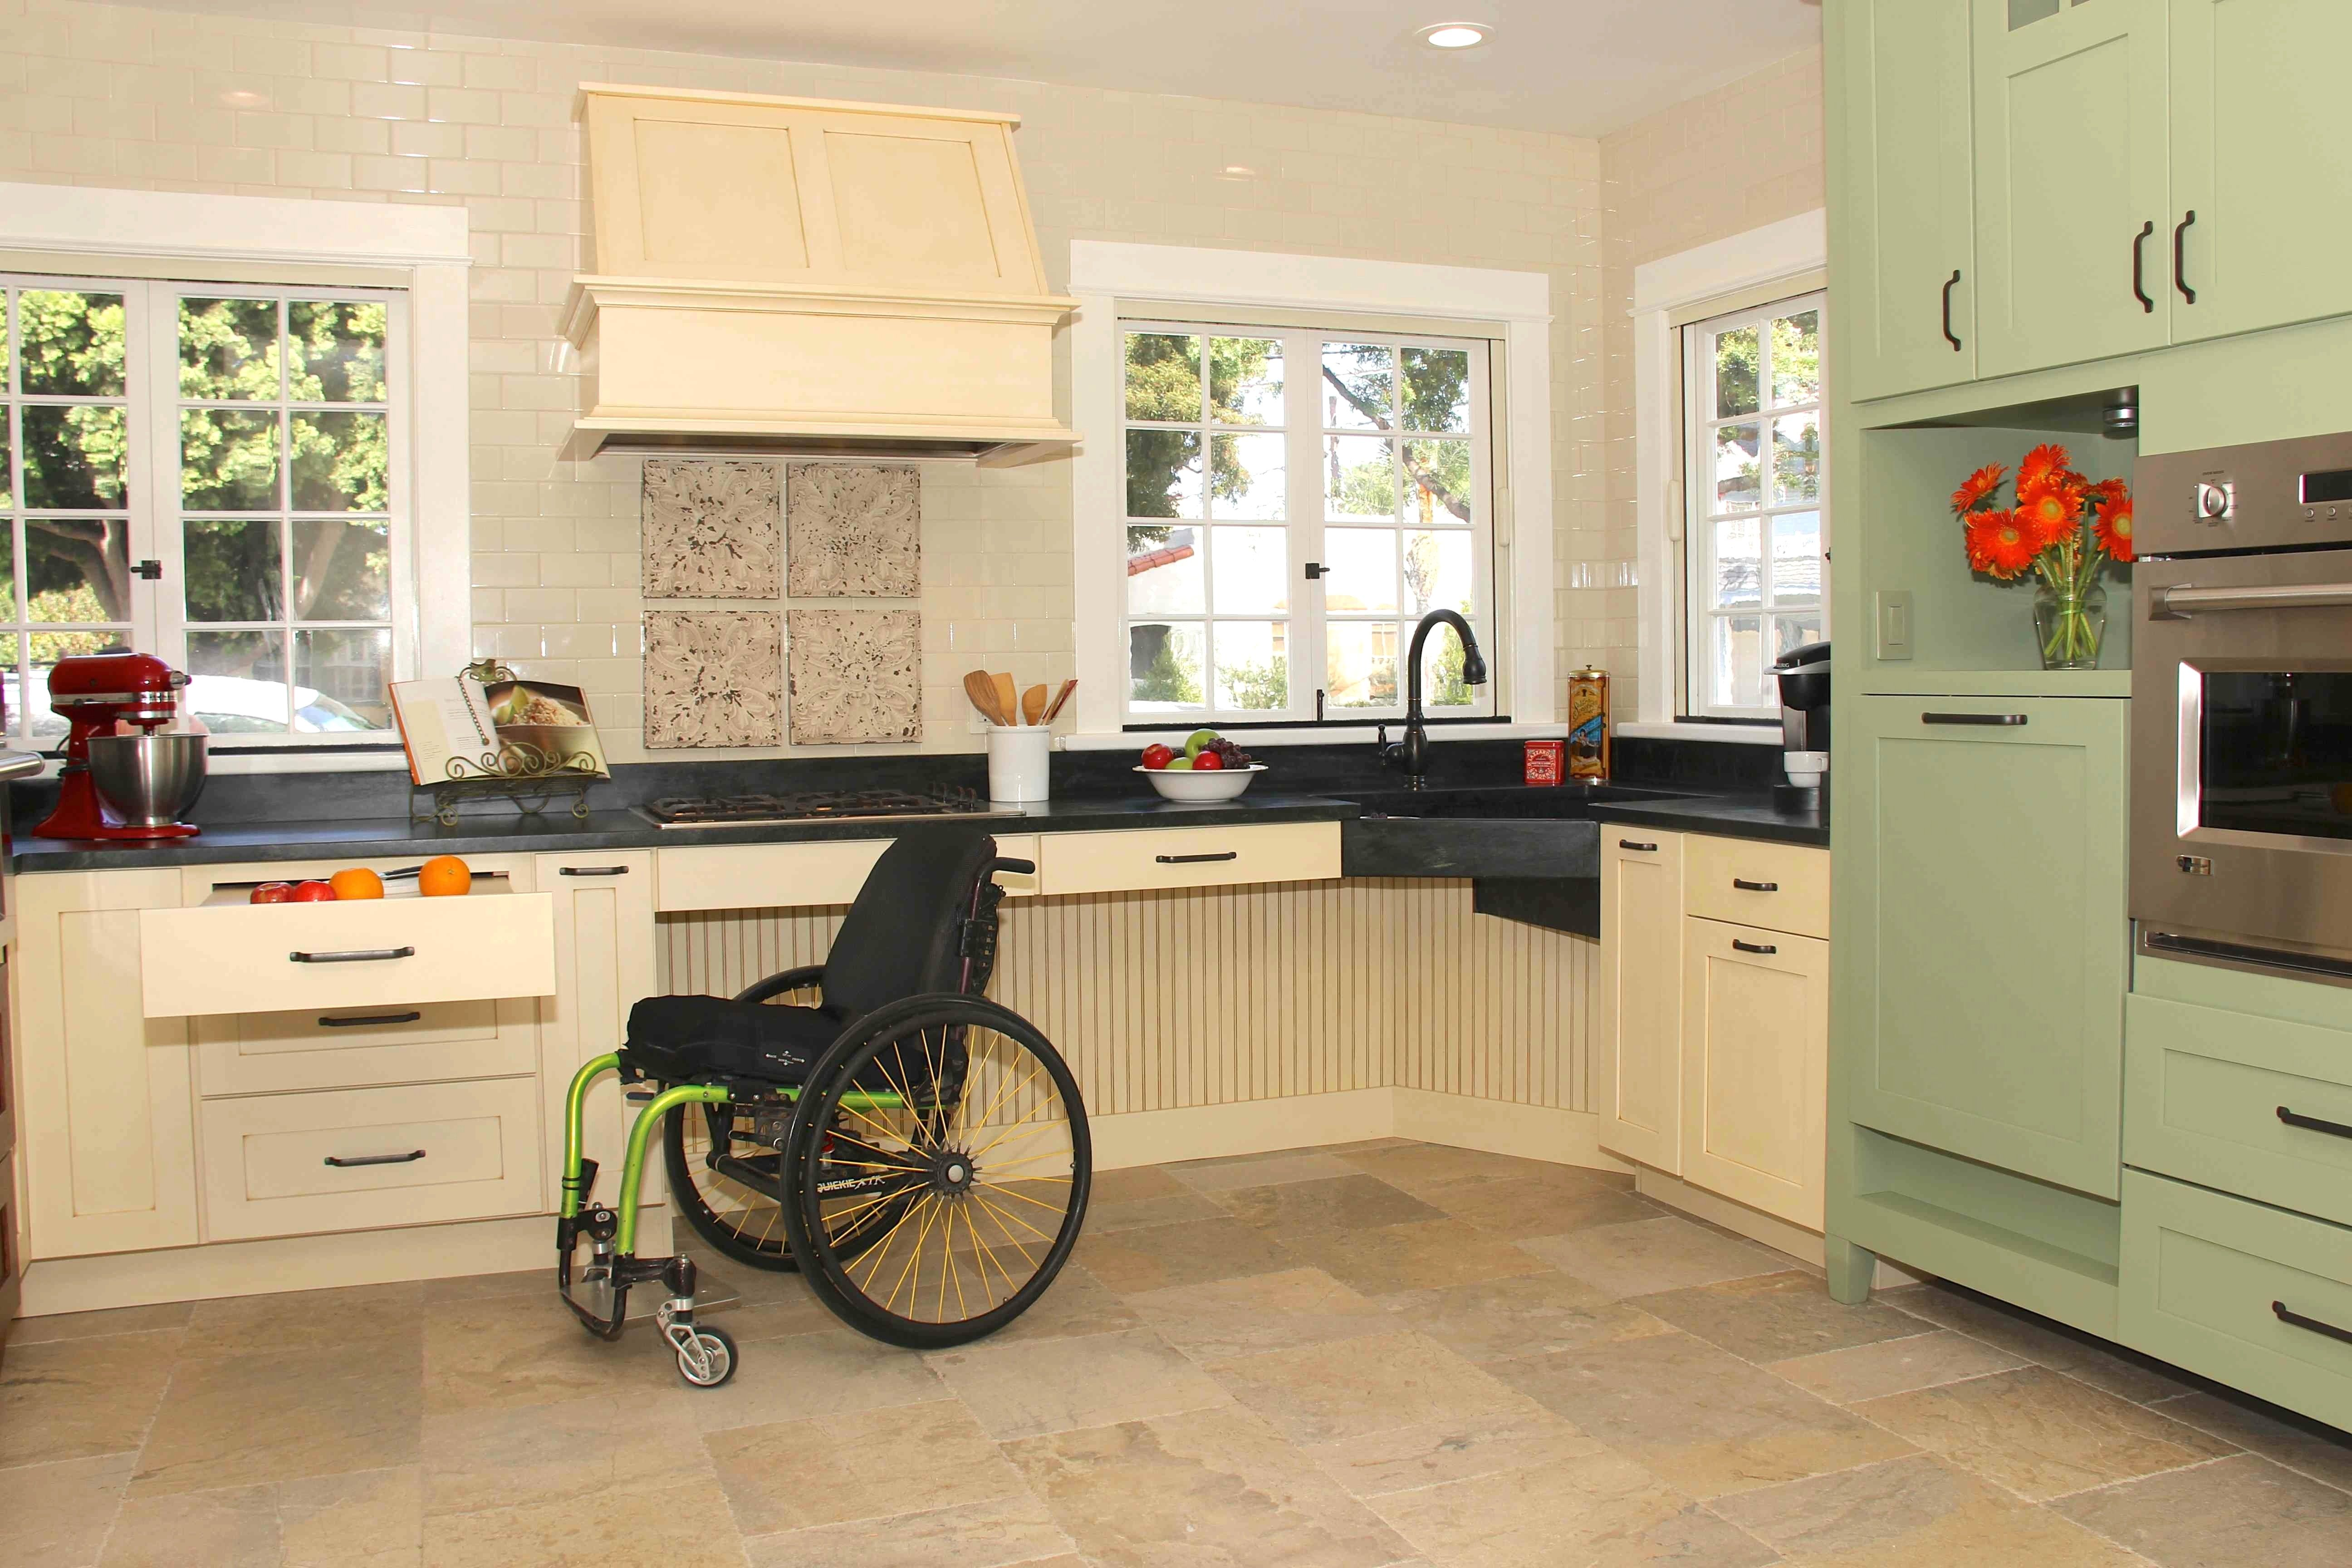 designs for handicapped homes Google Search handicap